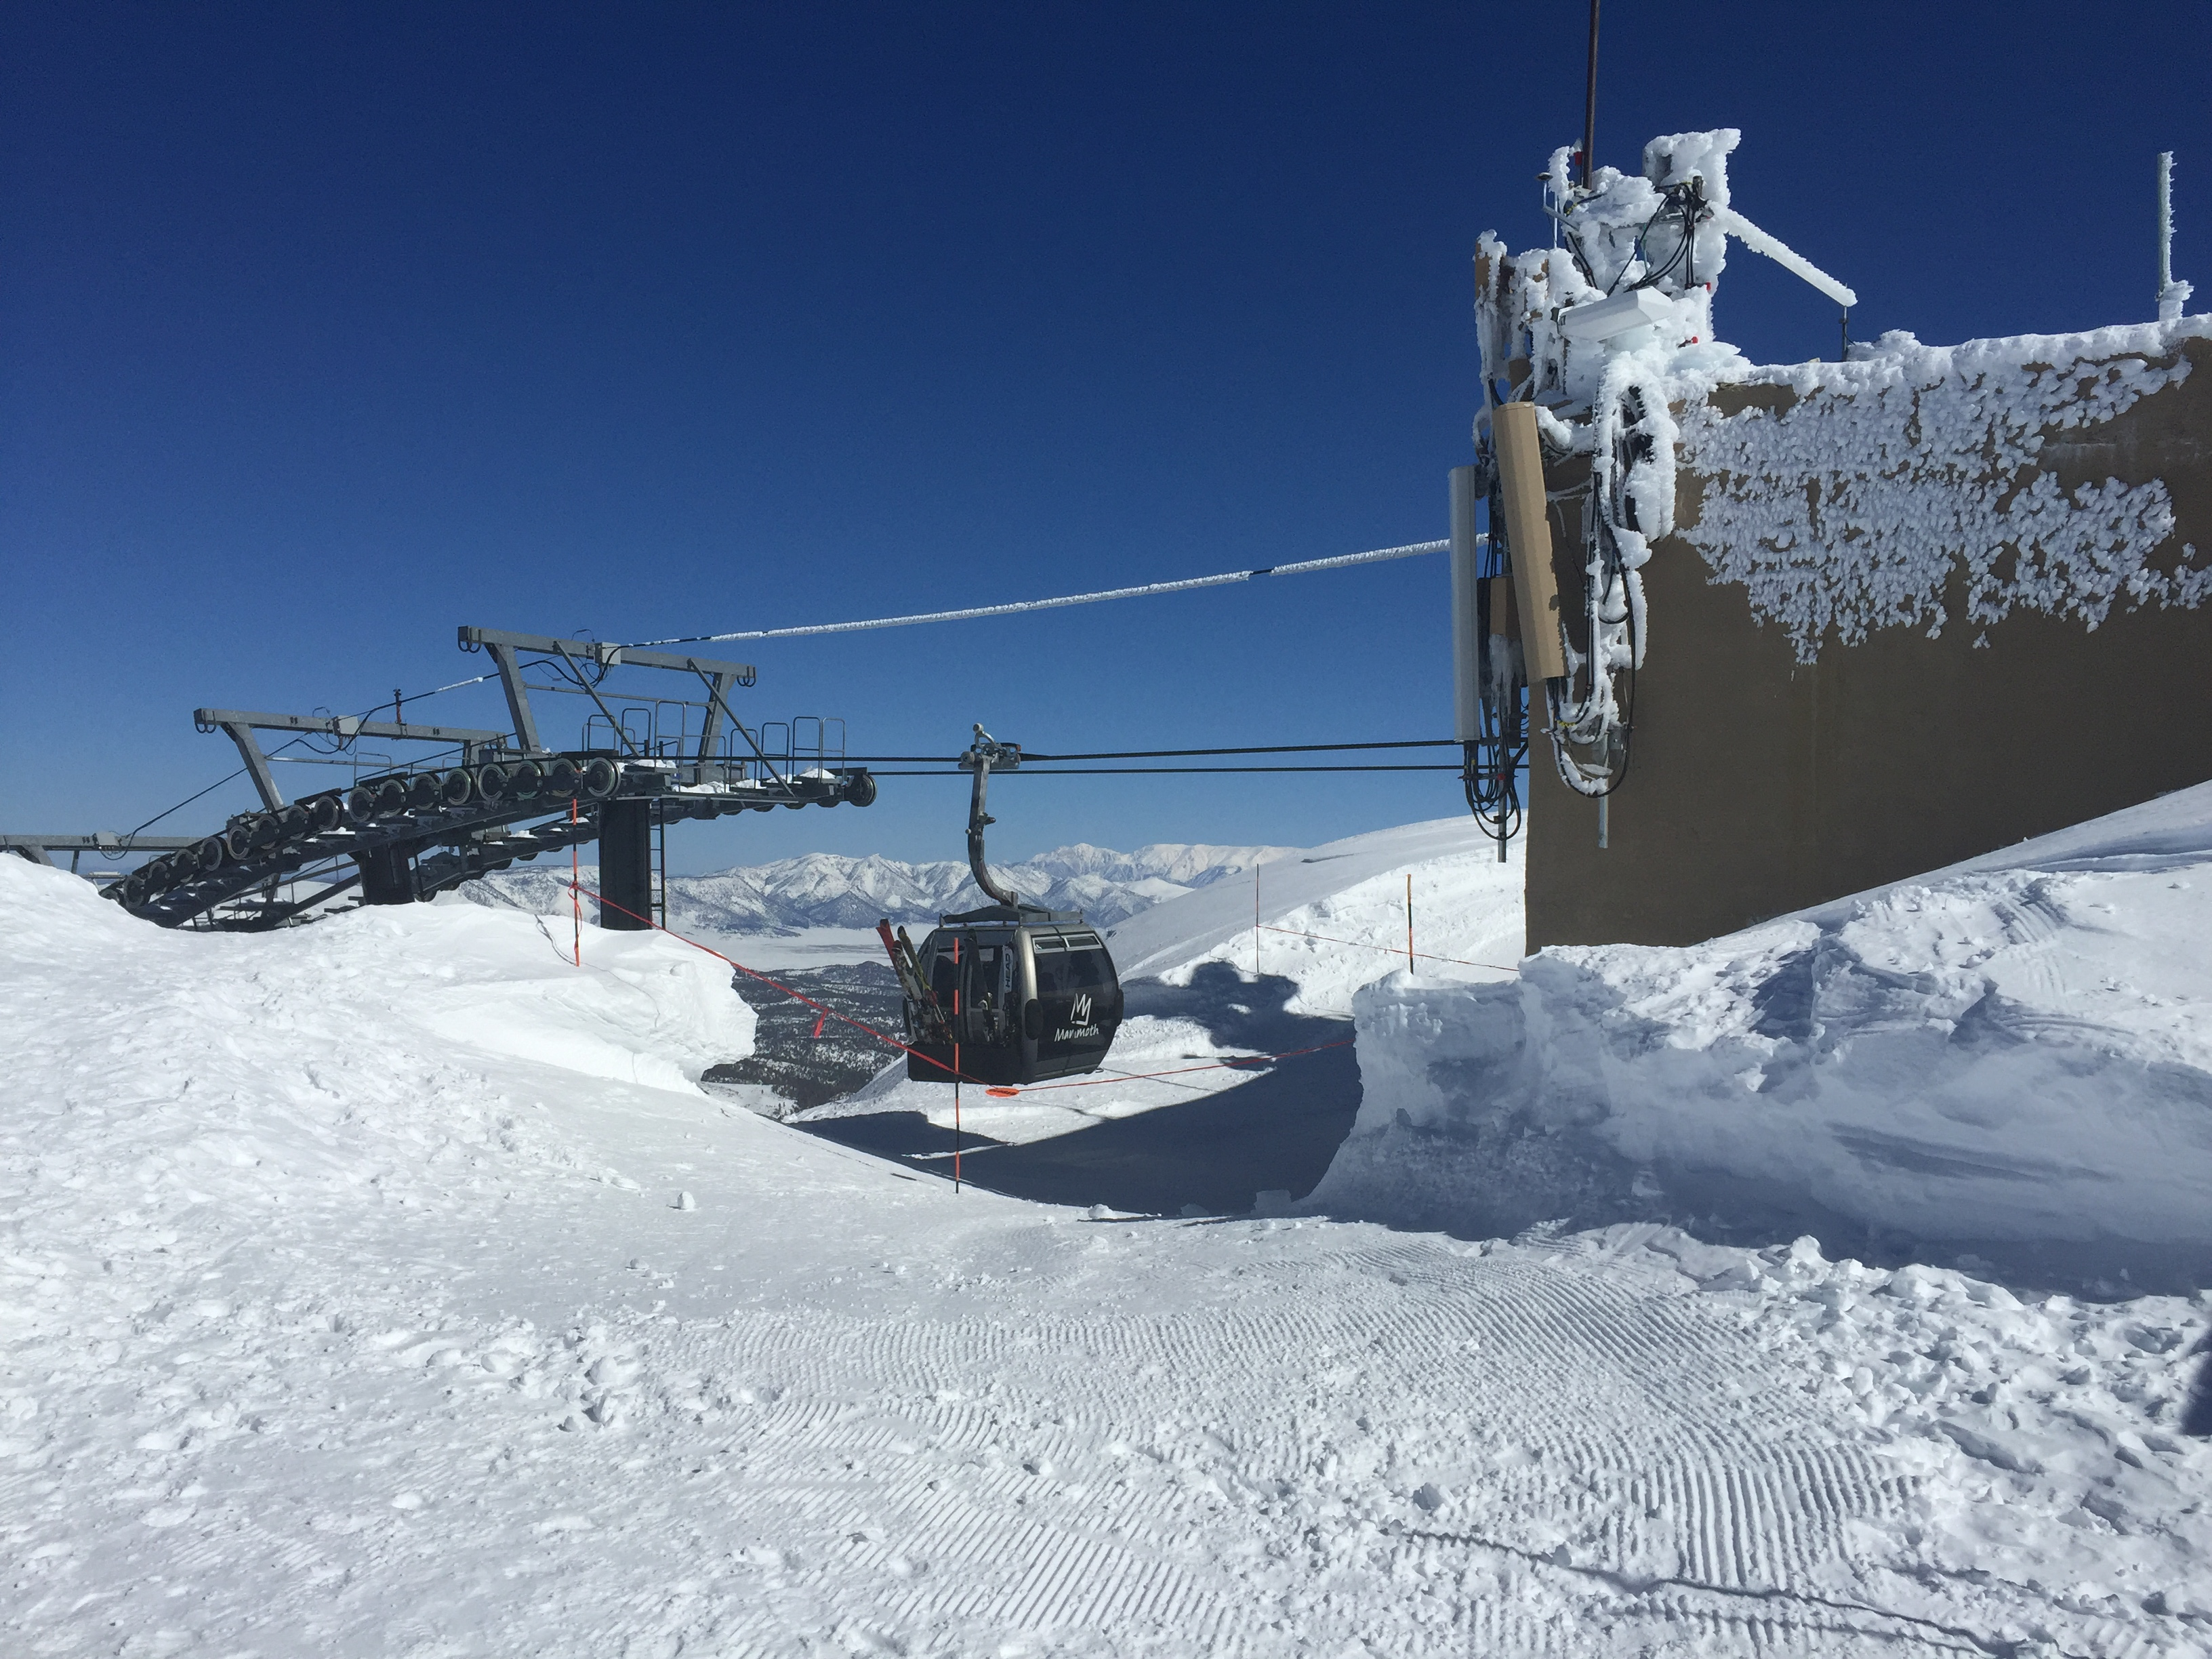 Top of Mammoth Mountain Ski Area on February 14, 2017